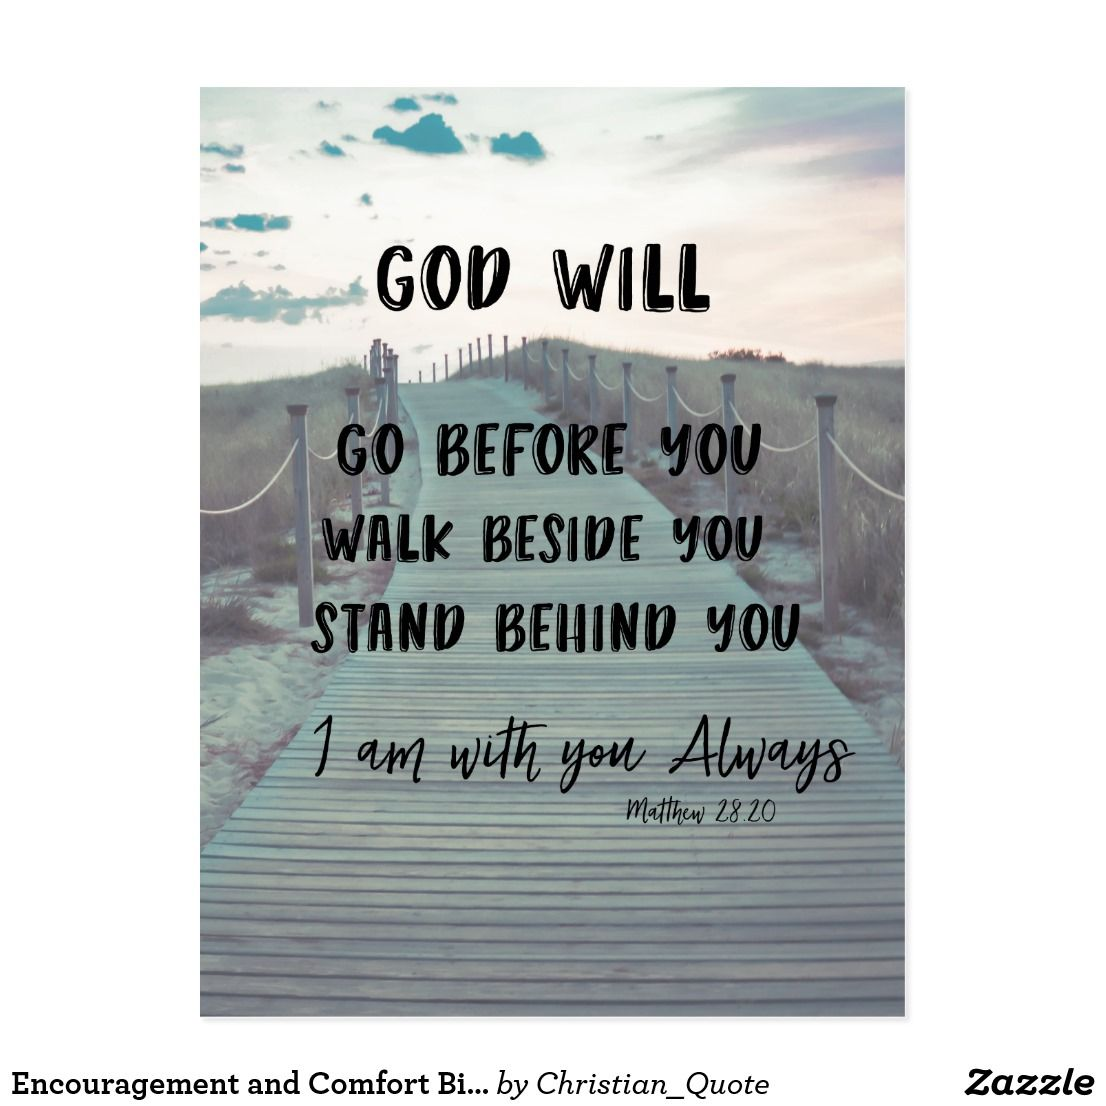 Quote Scripture Bible Verses: Encouragement And Comfort Bible Verse With Quote Postcard